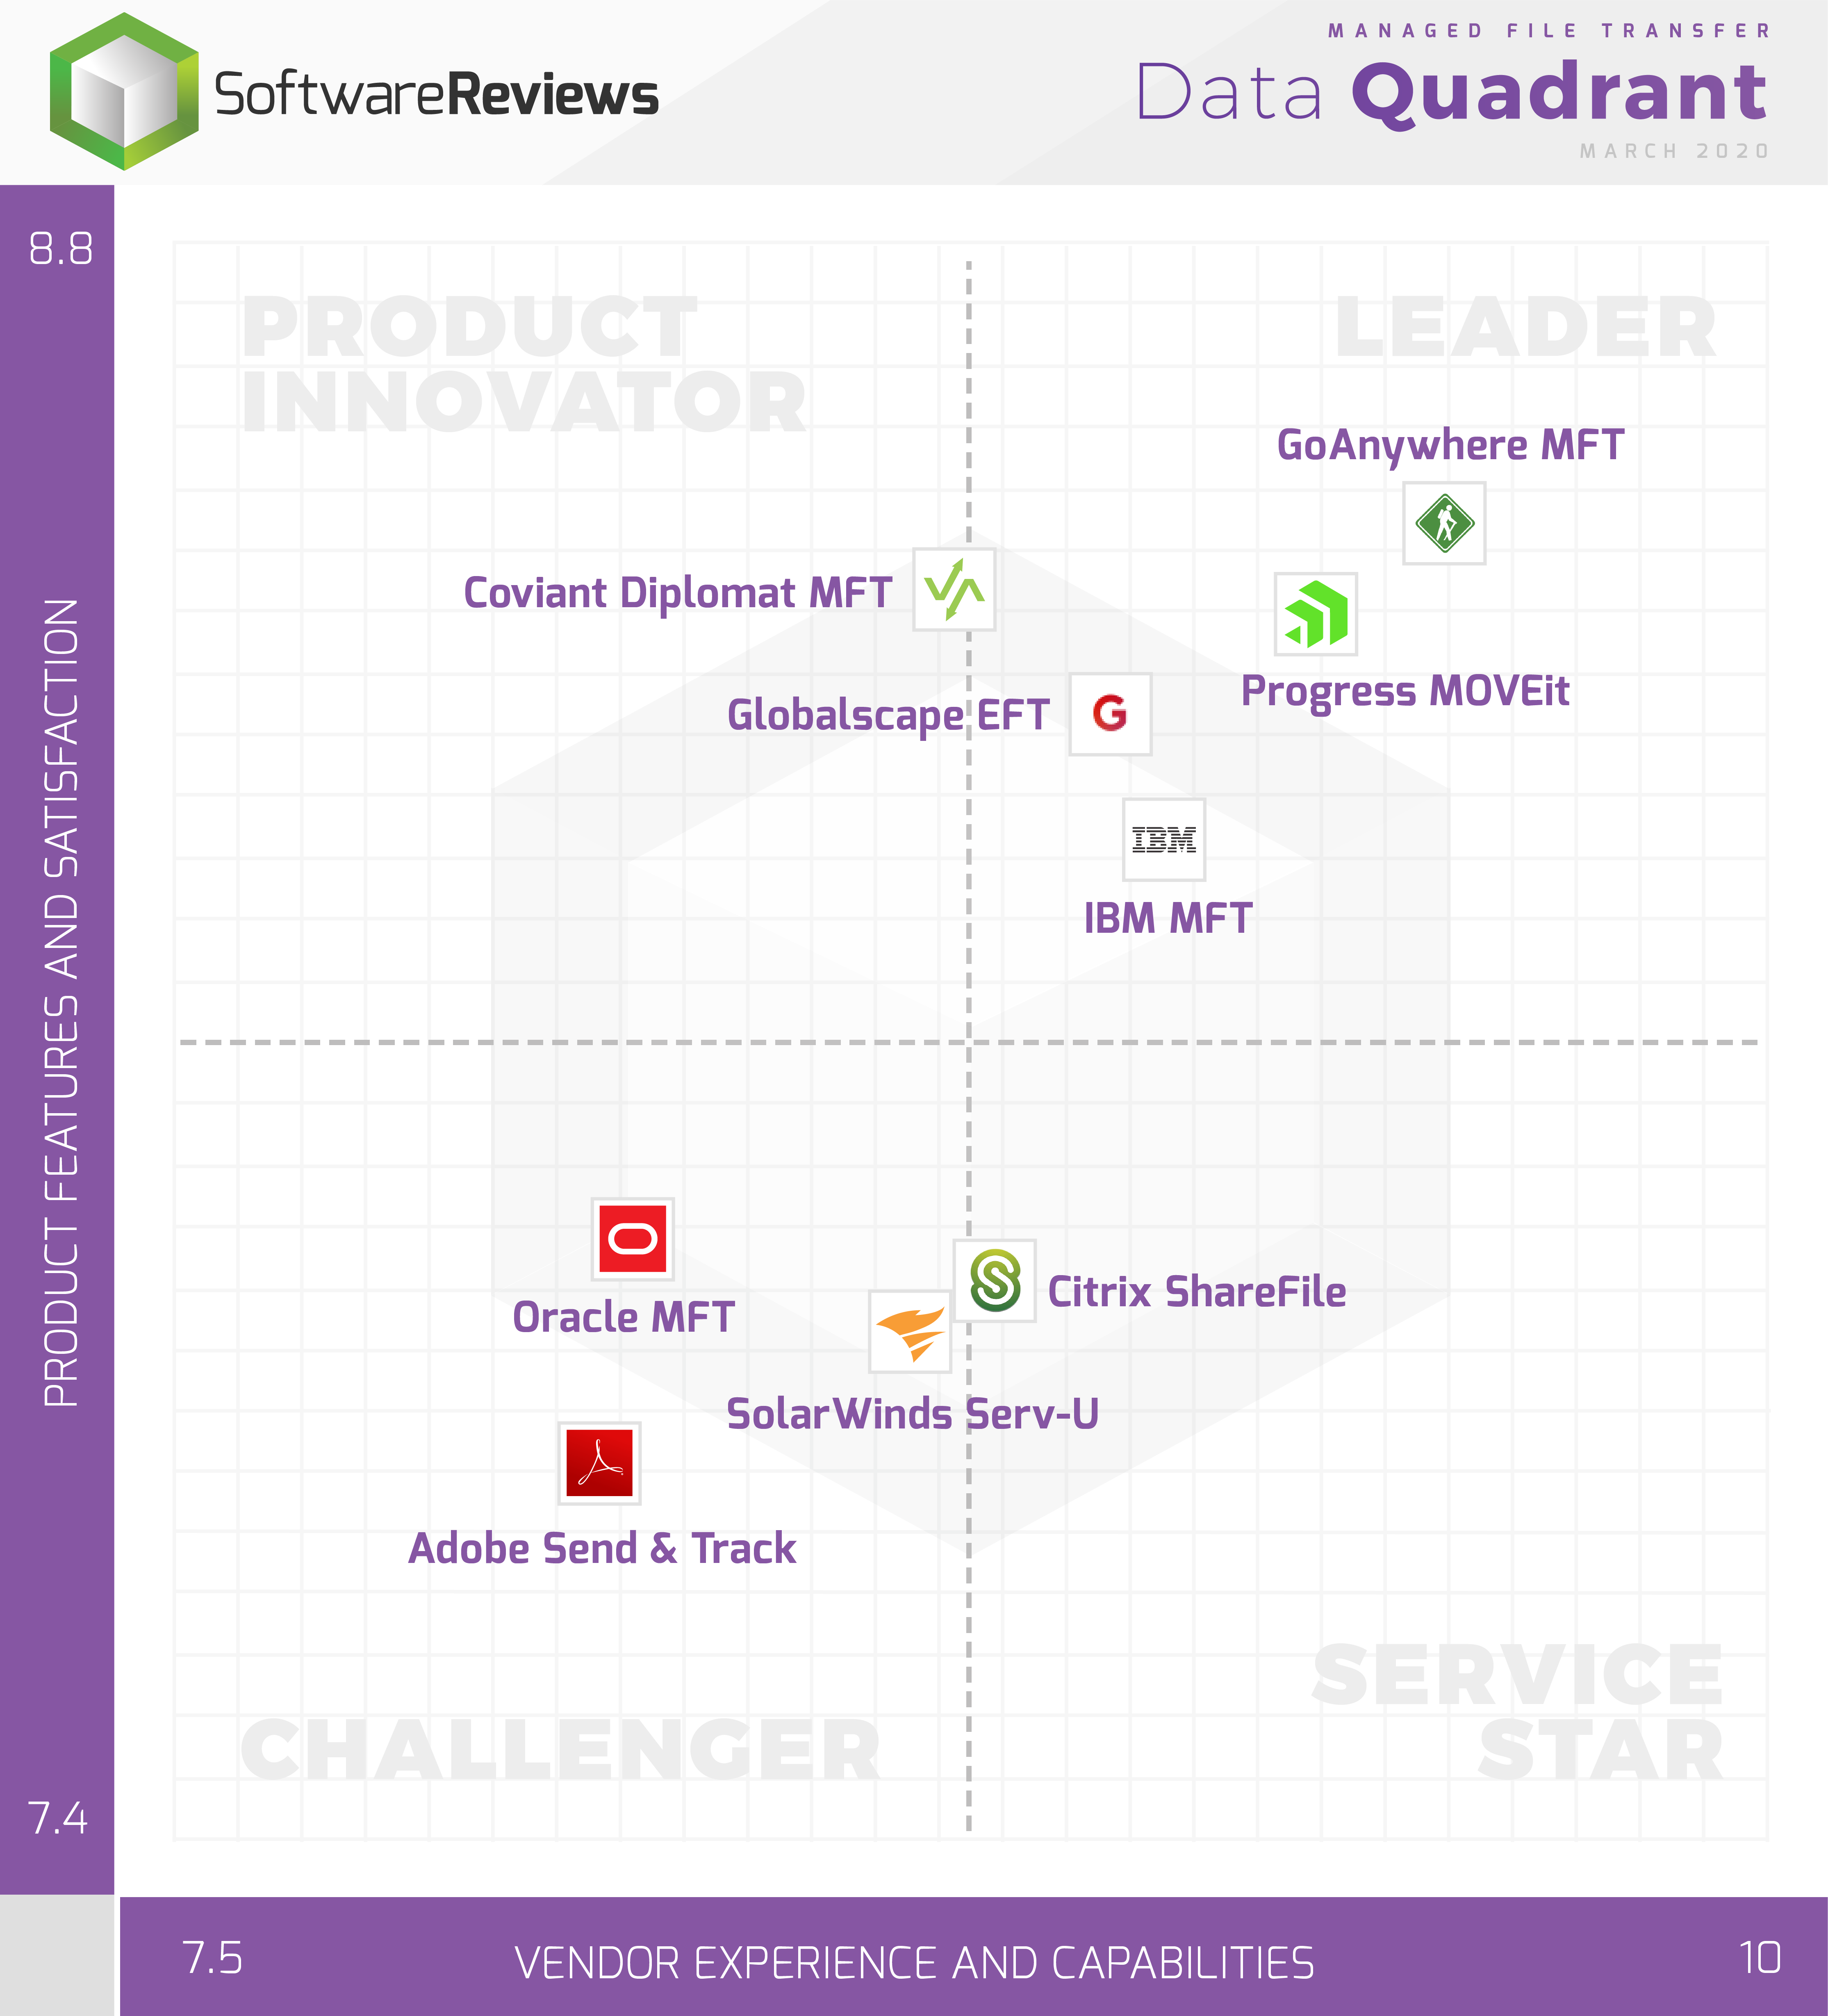 2020 Managed File Transfer Review and Data Quadrant